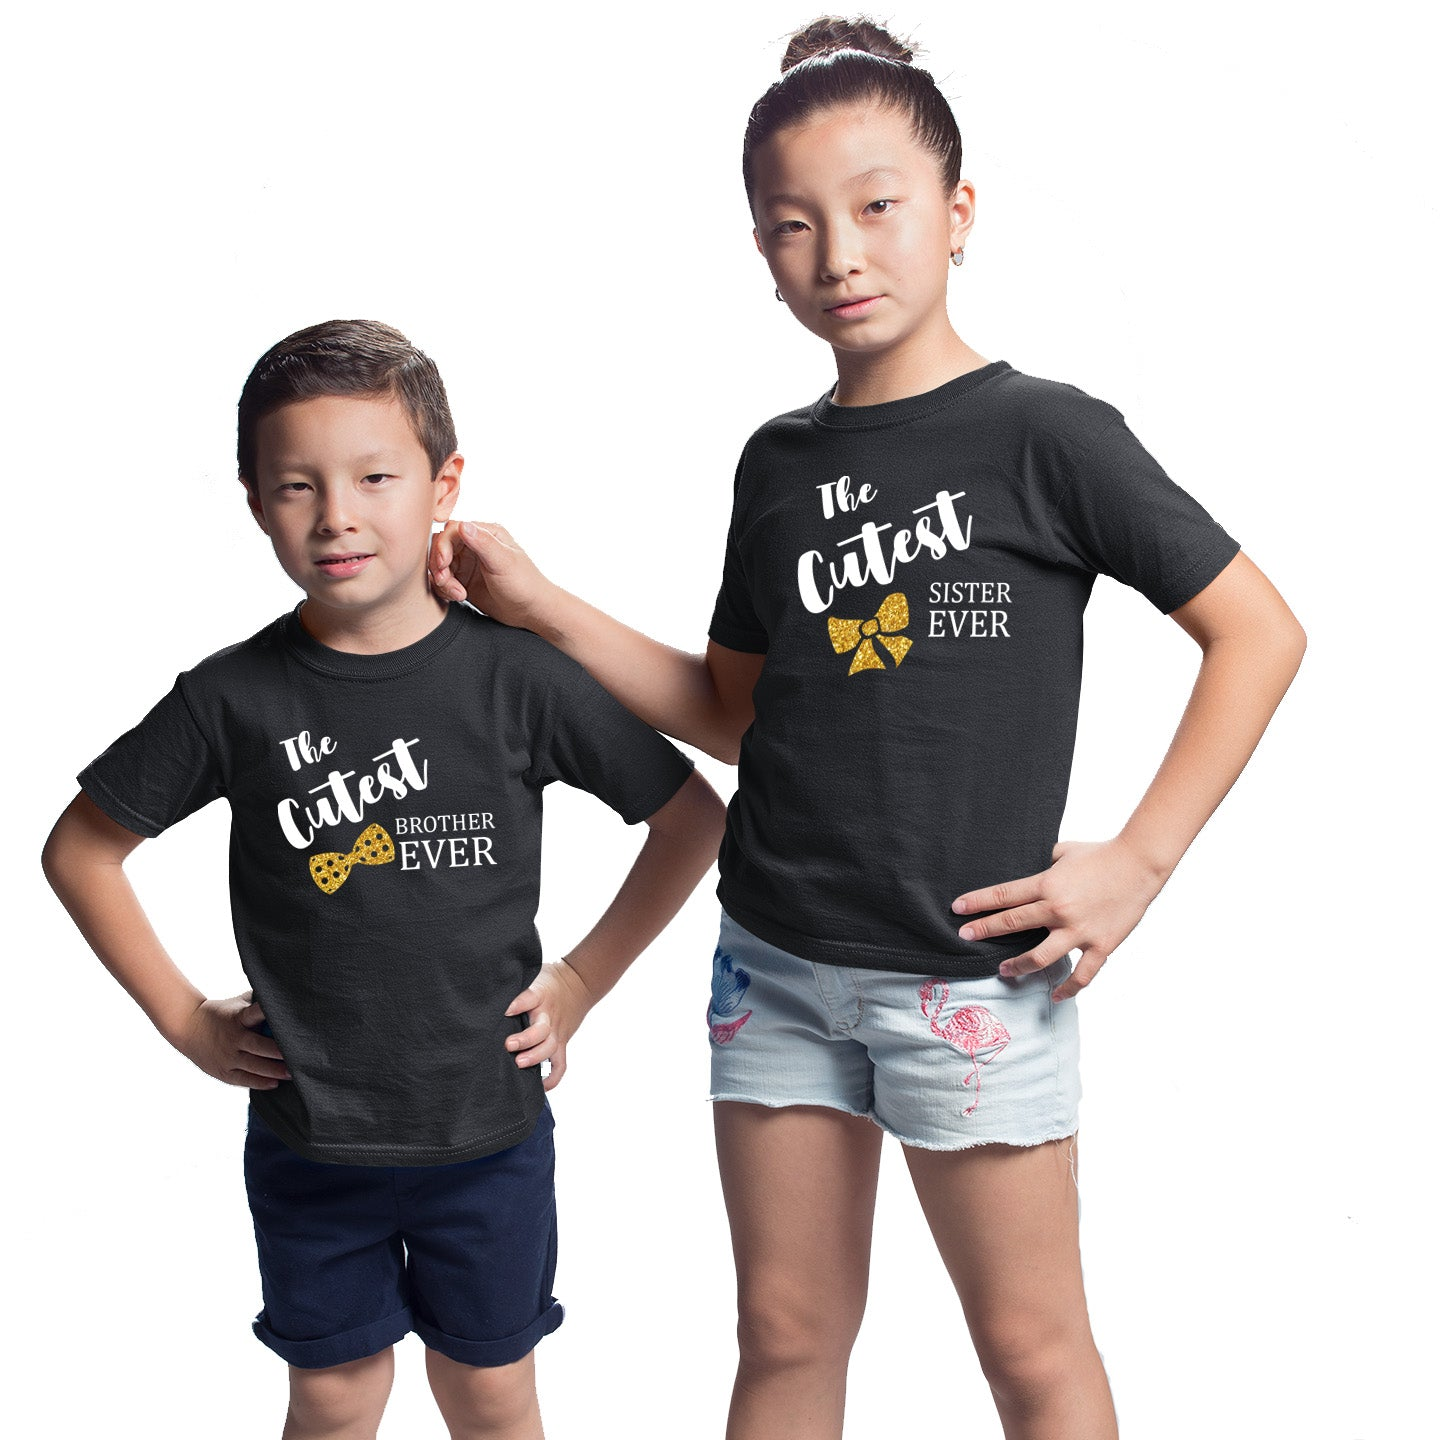 Sprinklecart The Cutest Sister Ever The Cutest Brother Ever Printed Matching Black Cotton T Shirts